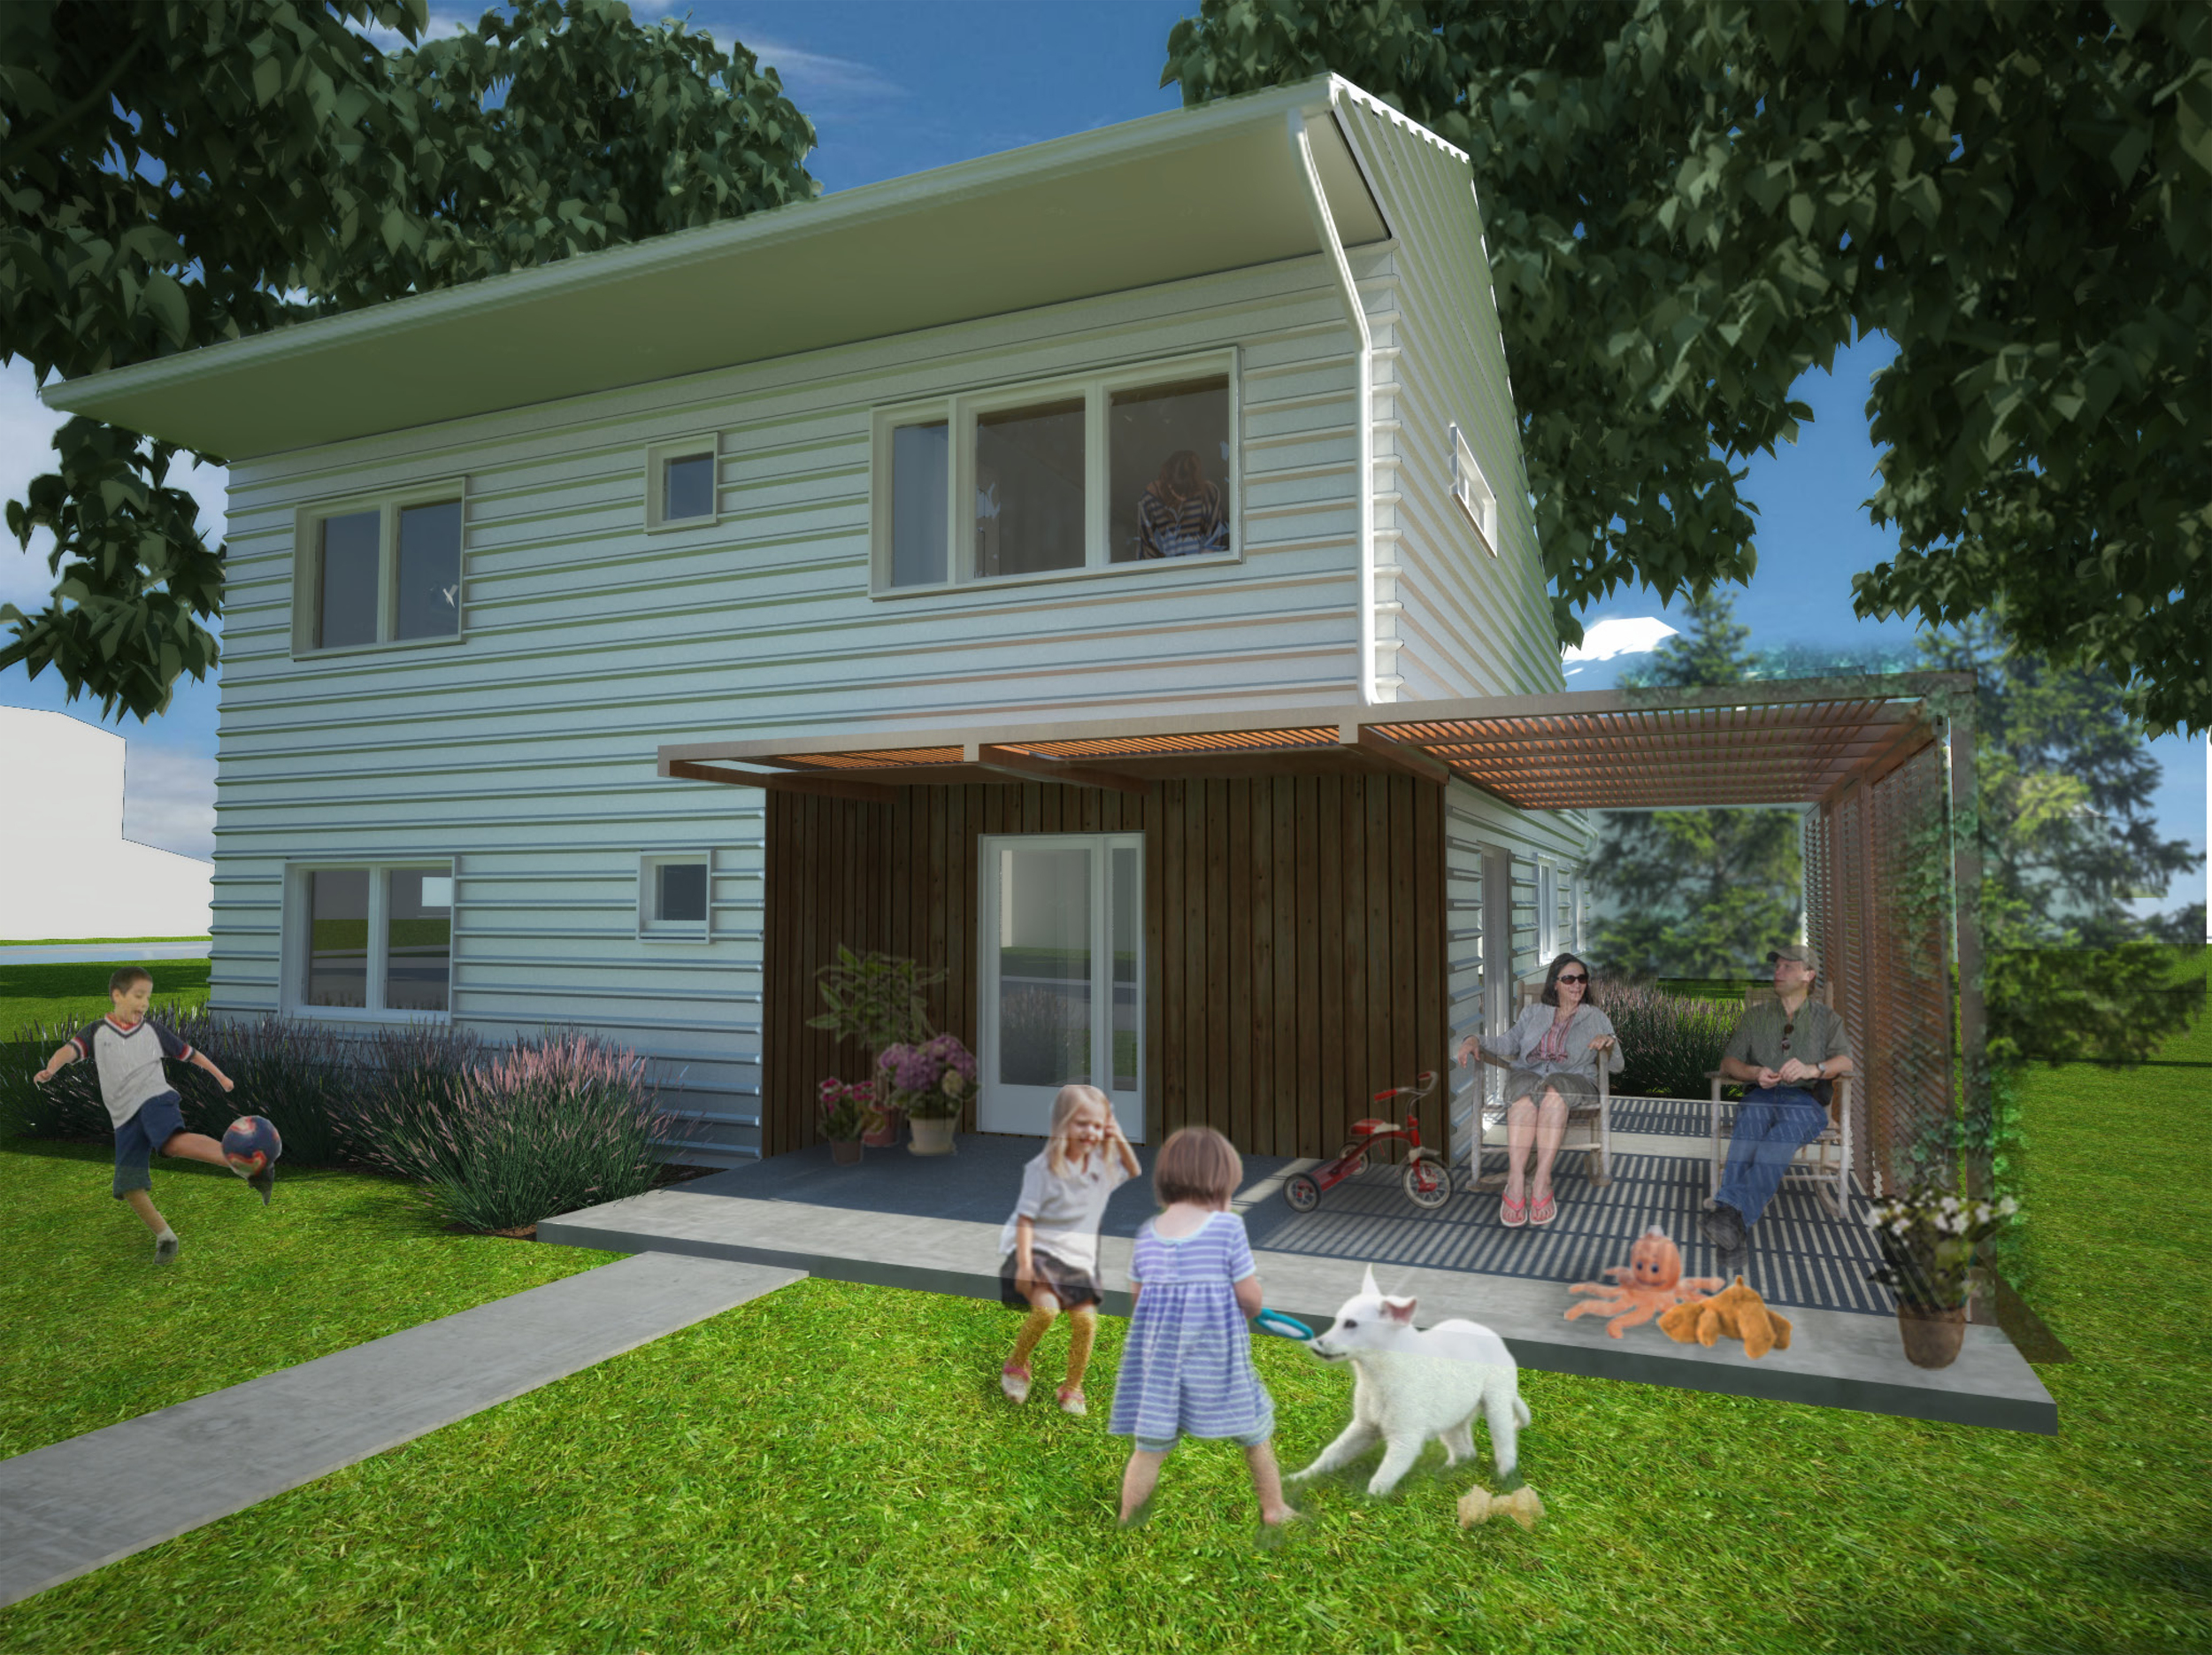 Render of the front entrance and porch.